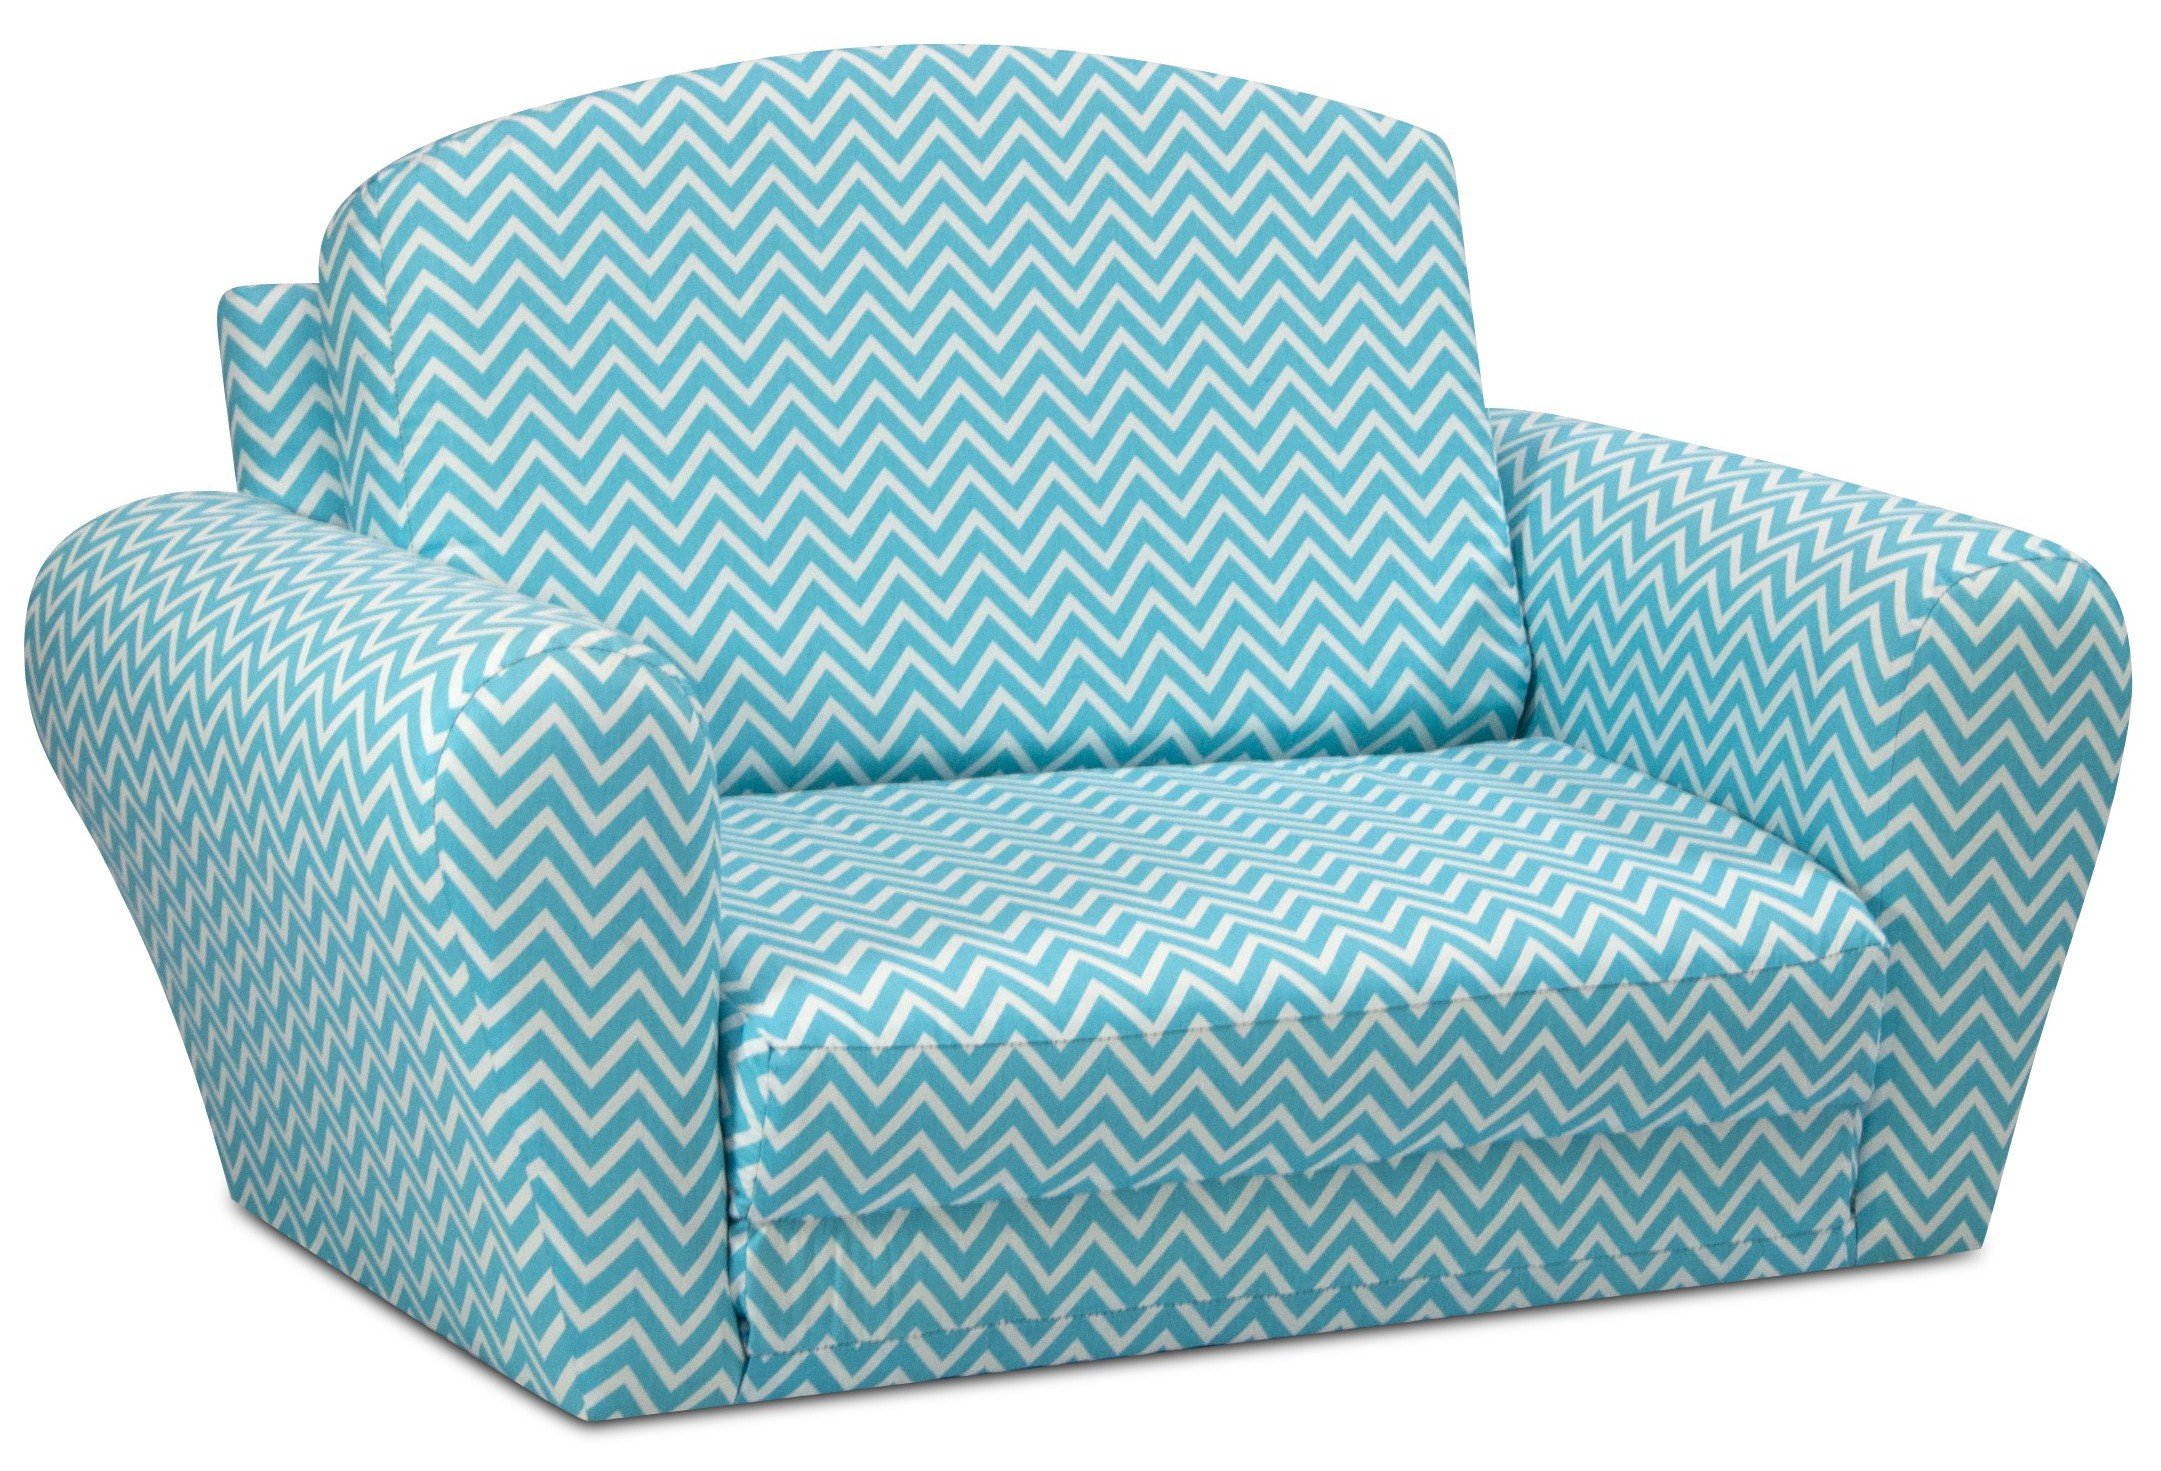 Kids Convertible Sleepover Chair Bed - Flip Out Lounger for Slumber Parties, Gaming, Chilling - Fun Childrens Furniture That Easily Converts To a Folding Cot - 2 Fabric Choices